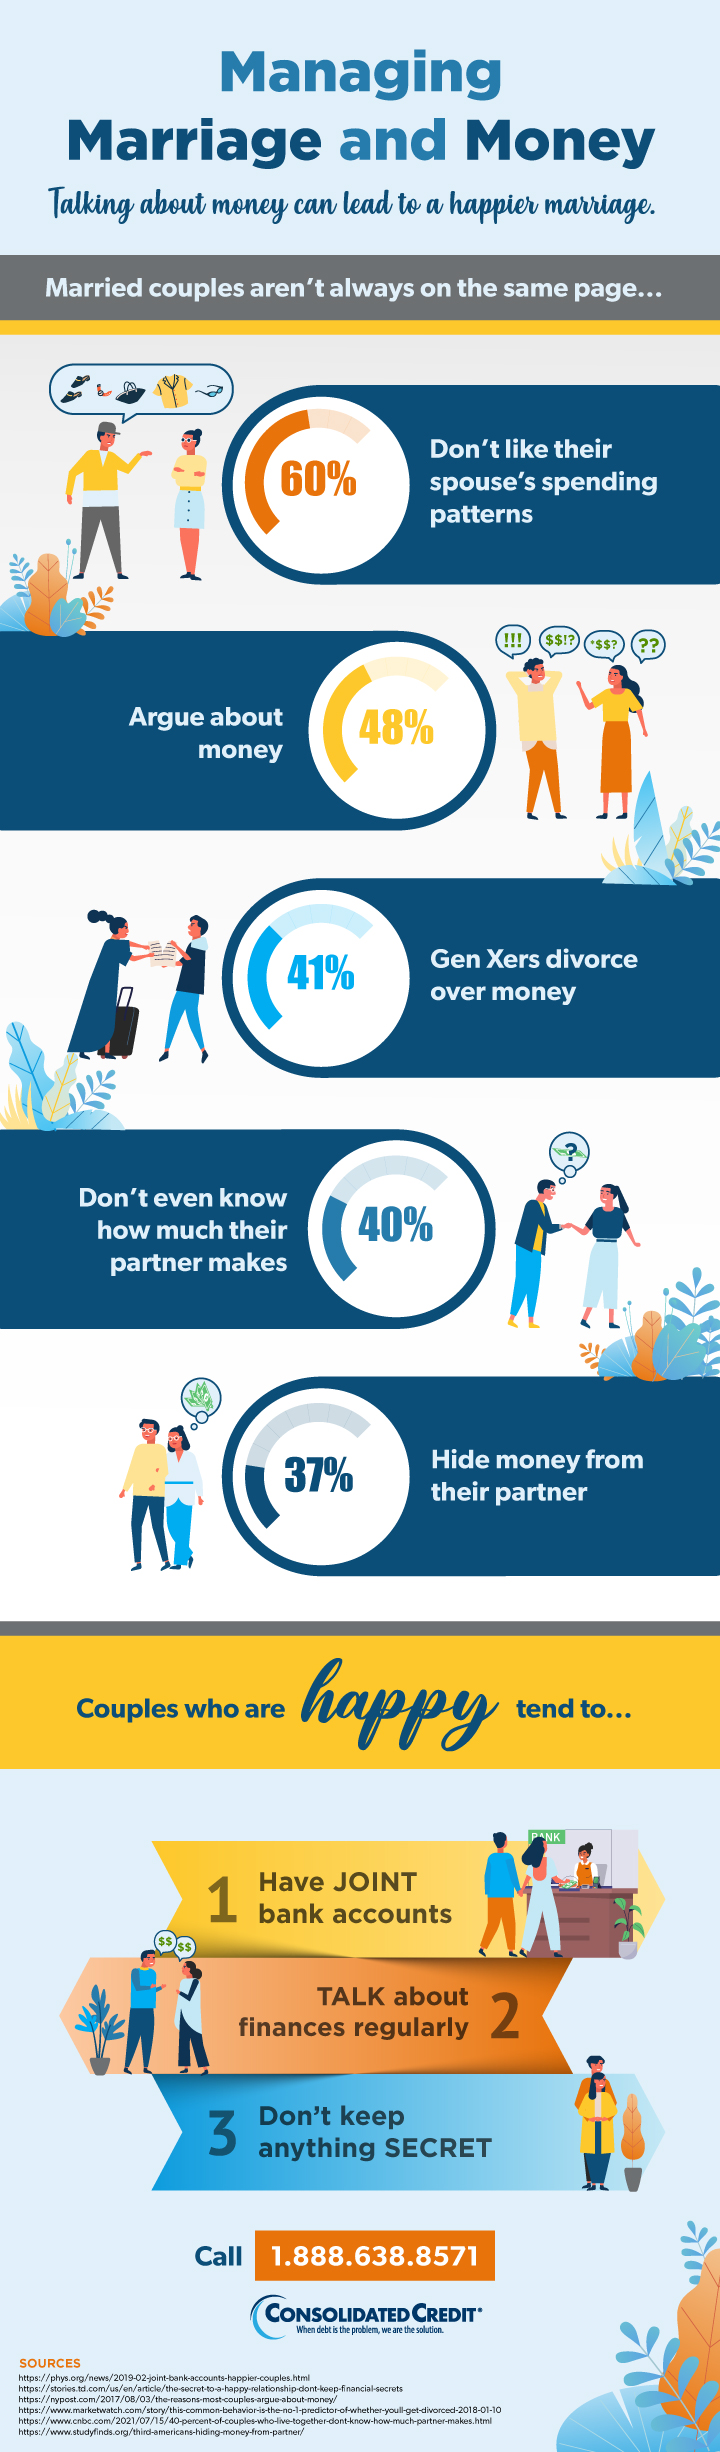 Consolidated Credit's latest infographic asks the question Can Marriage and Money Mix